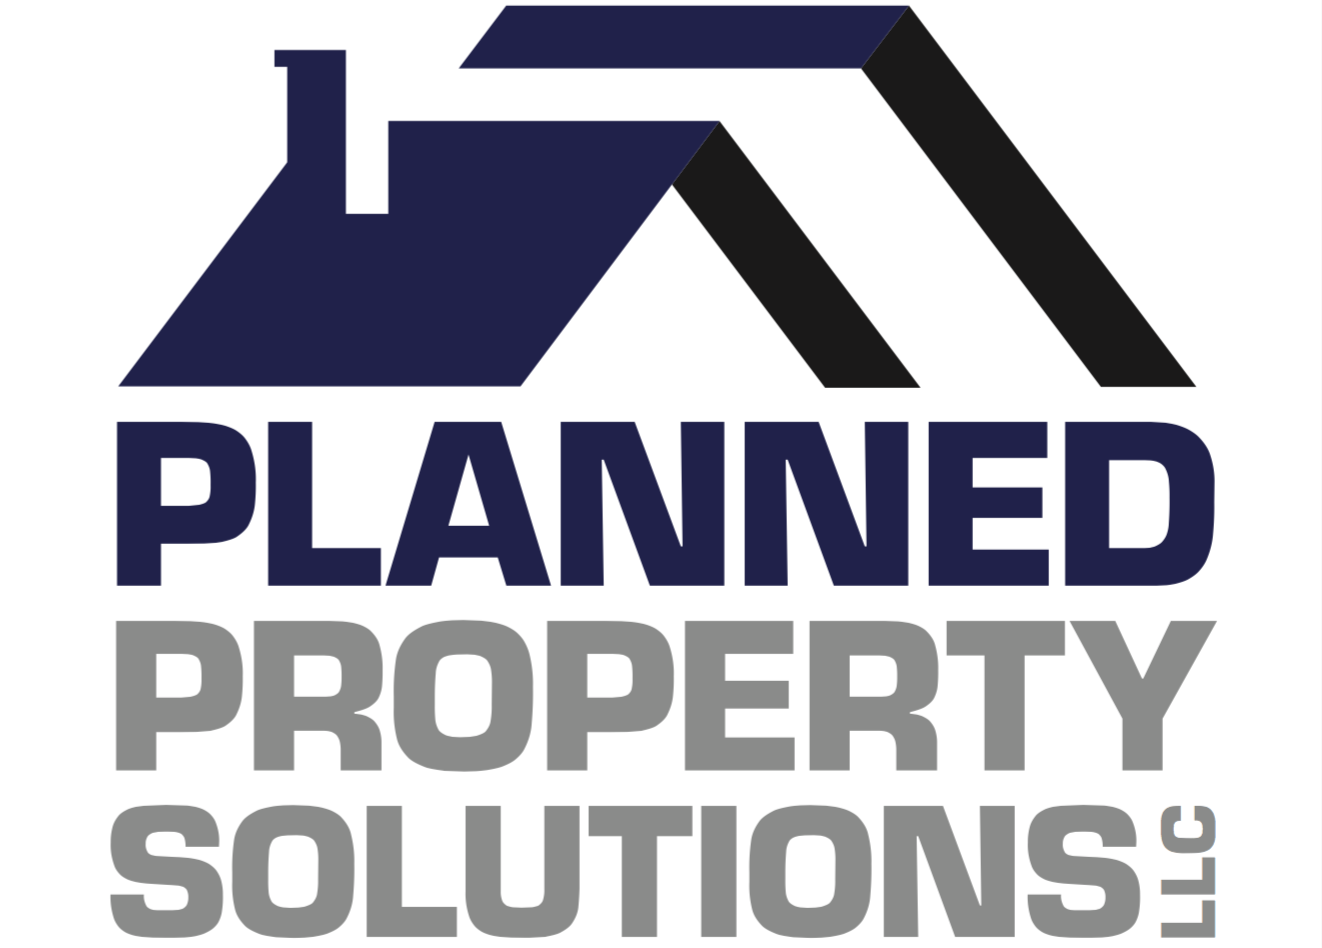 Planned Property Solutions